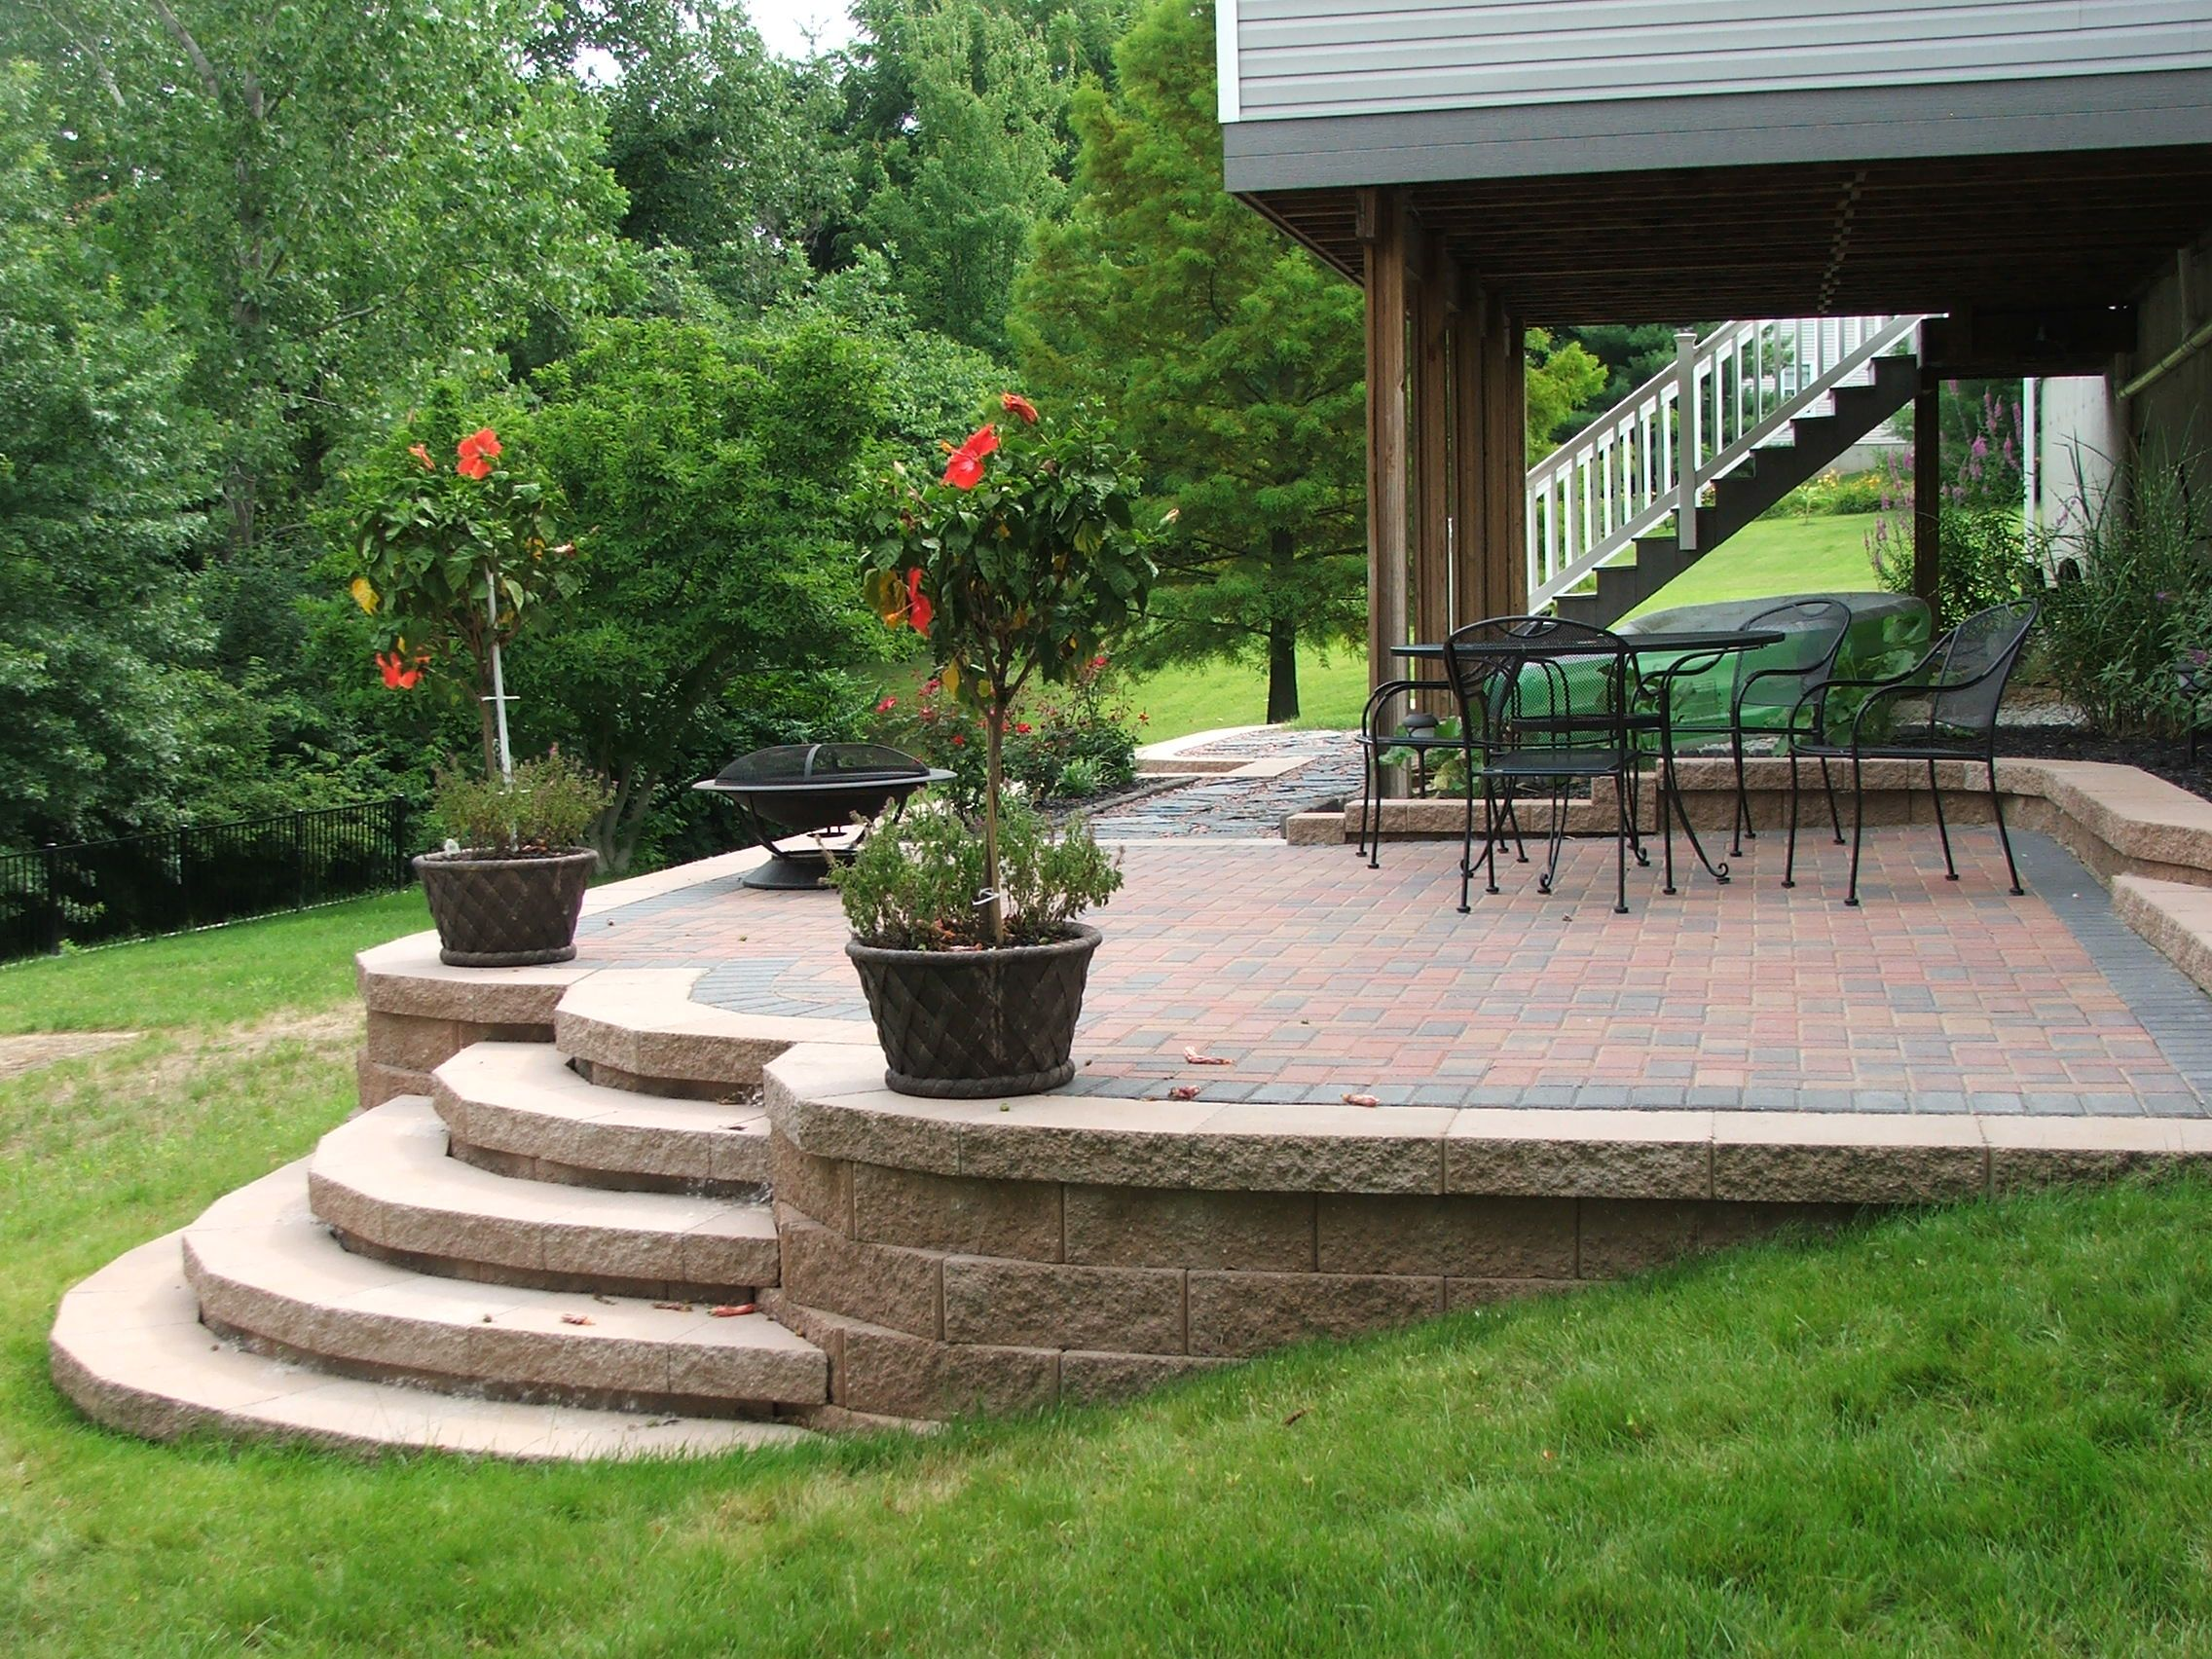 patio retaining wall - Retaining Wall Blocks Design